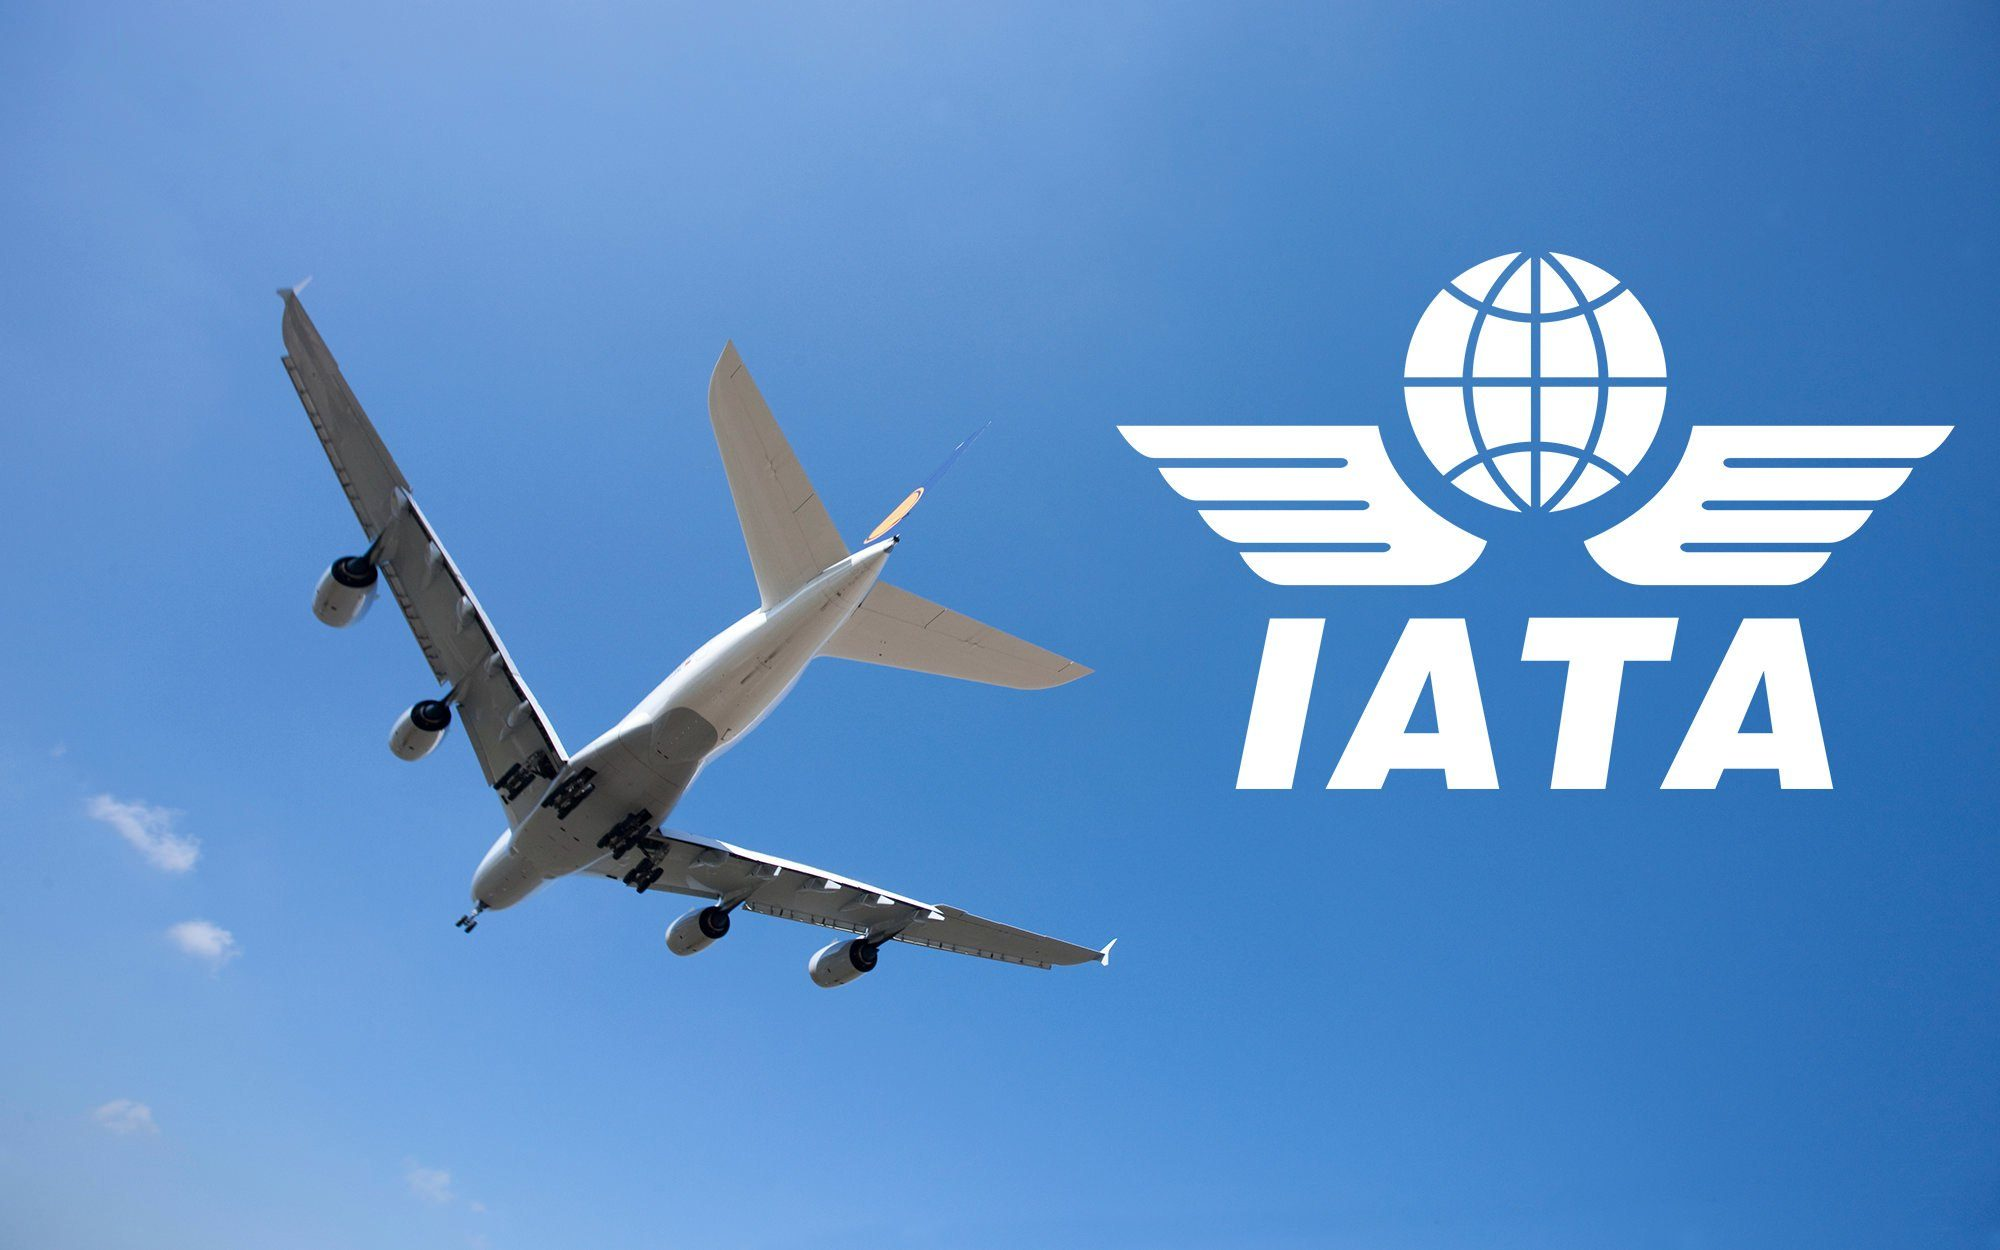 Confidence in air travel returns despite restriction issues - IATA